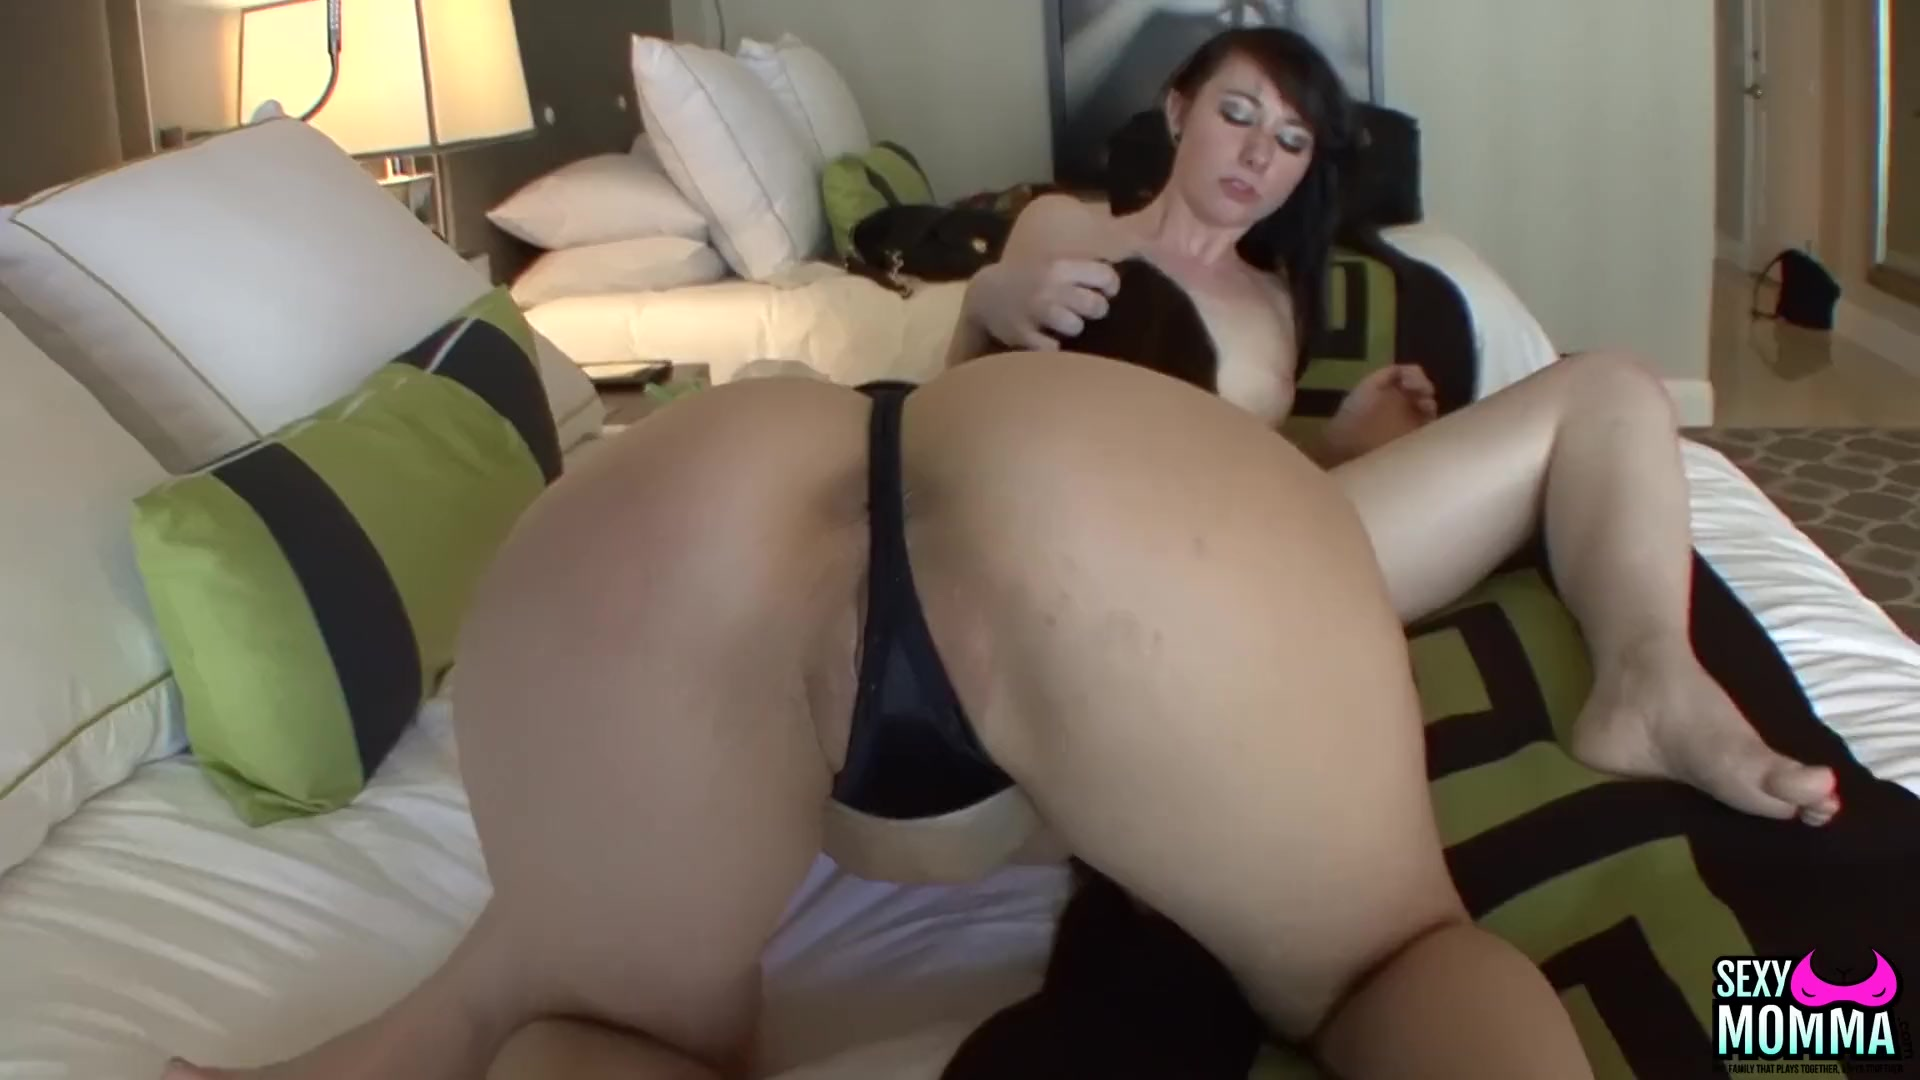 Mandy majestic fat plumpers large woman porn horny XXX